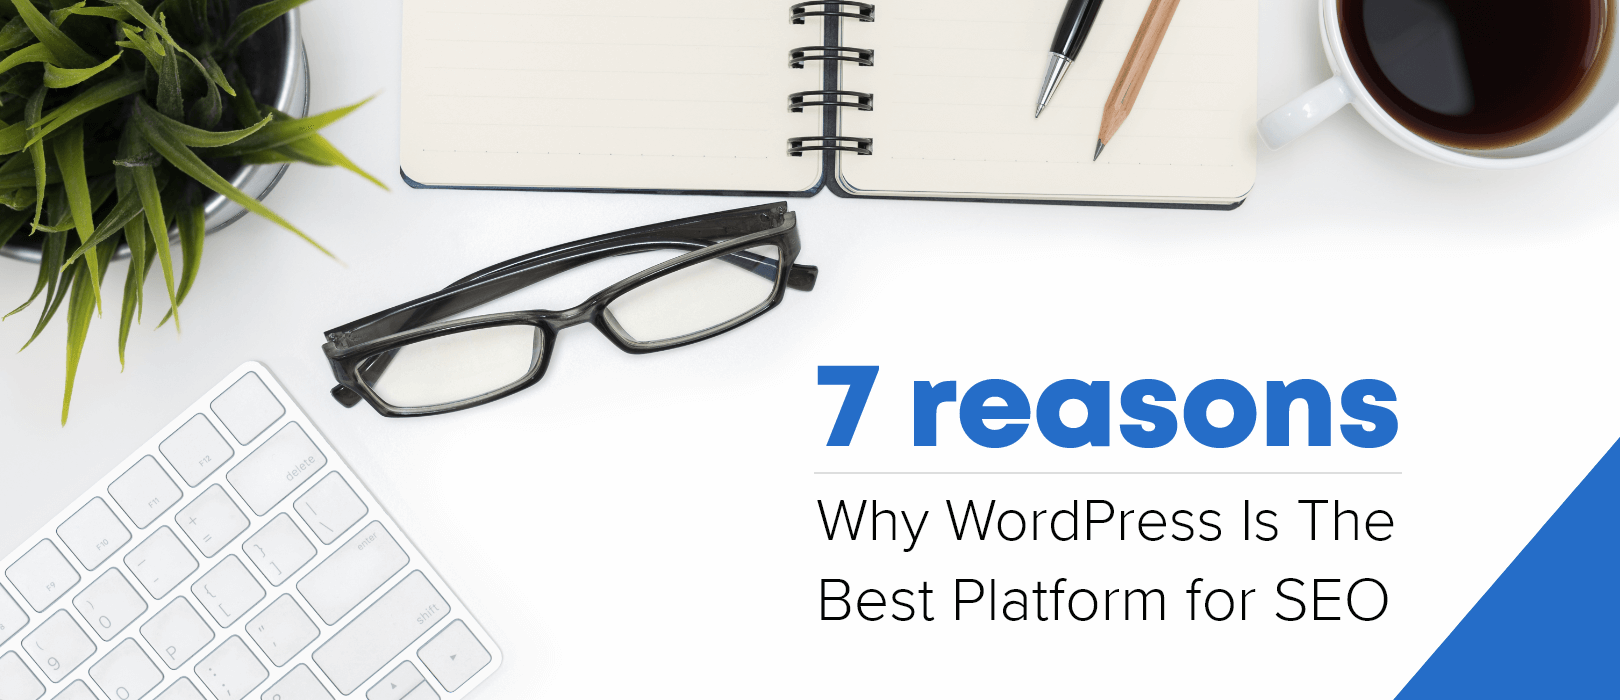 7 Reasons Why WordPress Is the Best Platform for SEO